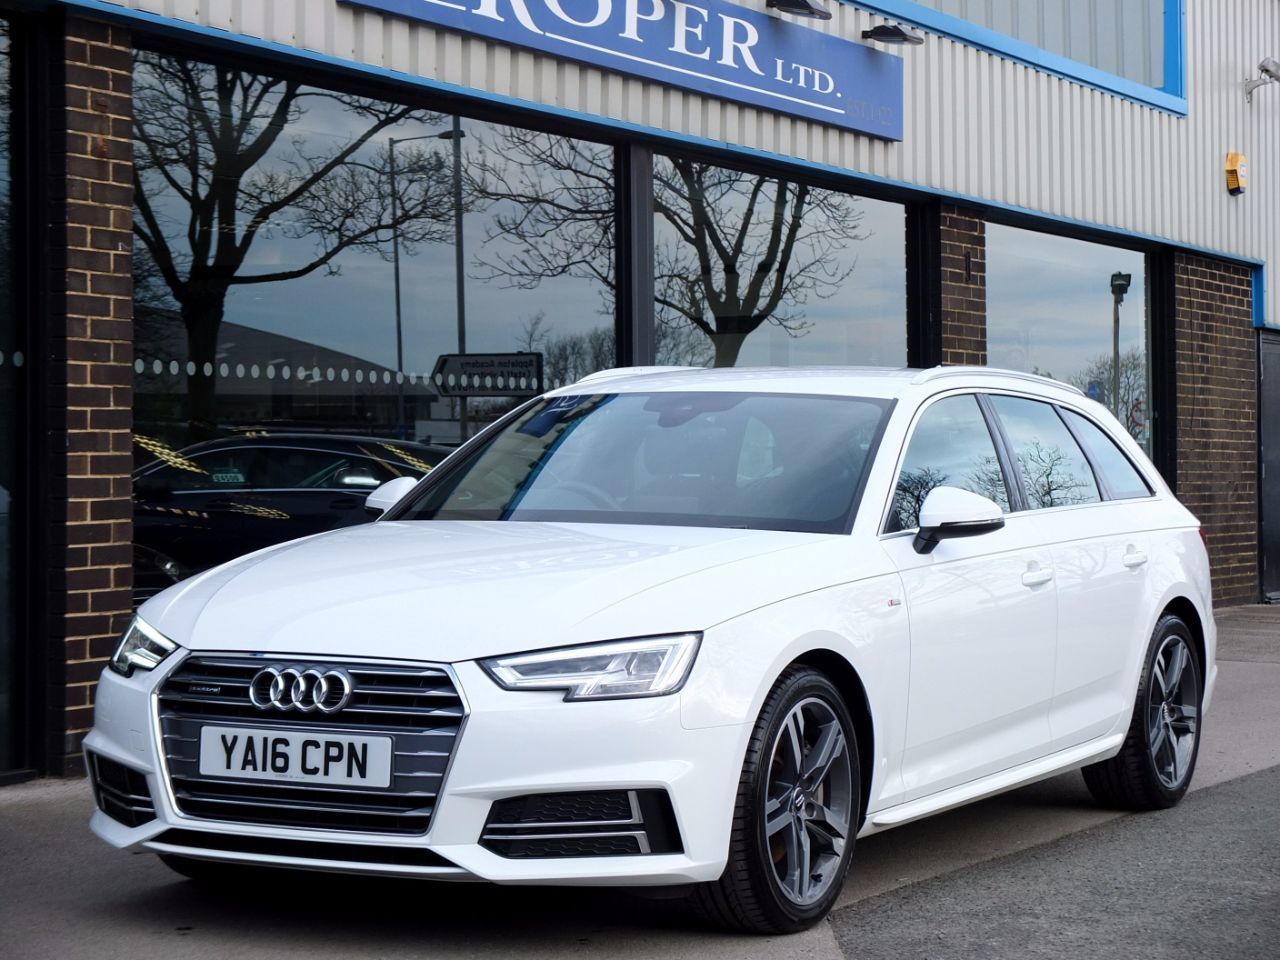 used audi a4 avant 2 0 tdi quattro s line s tronic 190ps for sale in bradford west yorkshire. Black Bedroom Furniture Sets. Home Design Ideas